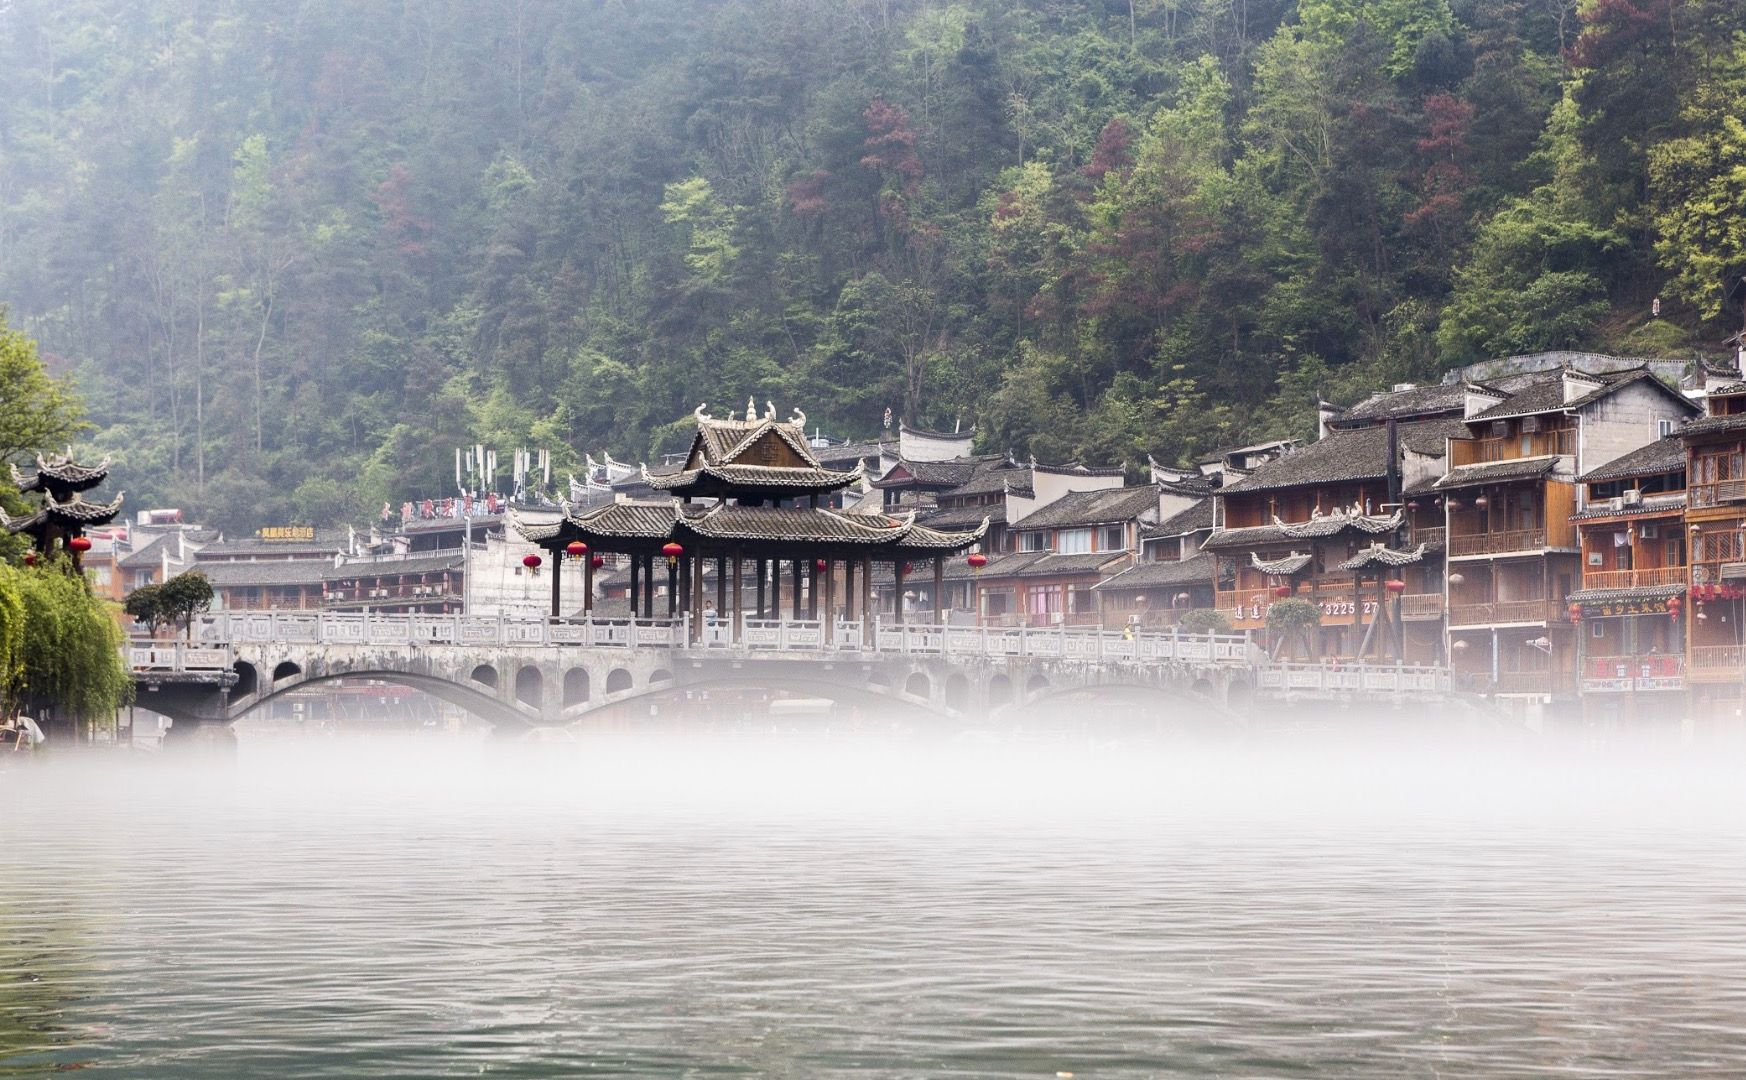 Fenghuang - Chine ©Thinkstock